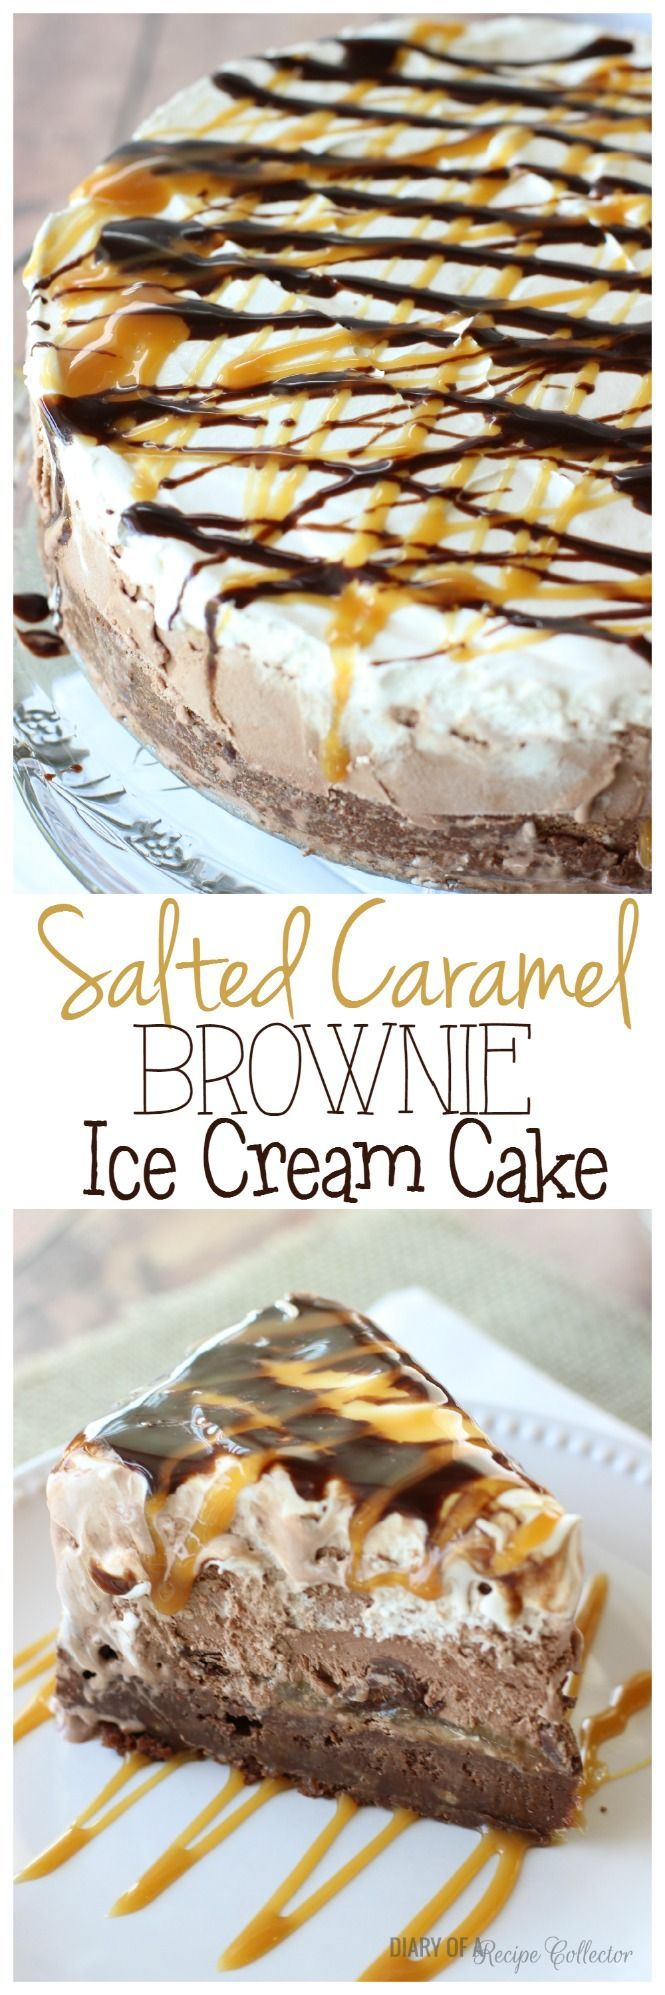 Salted Caramel Brownie Ice Cream Cake   Posted By: DebbieNet.com